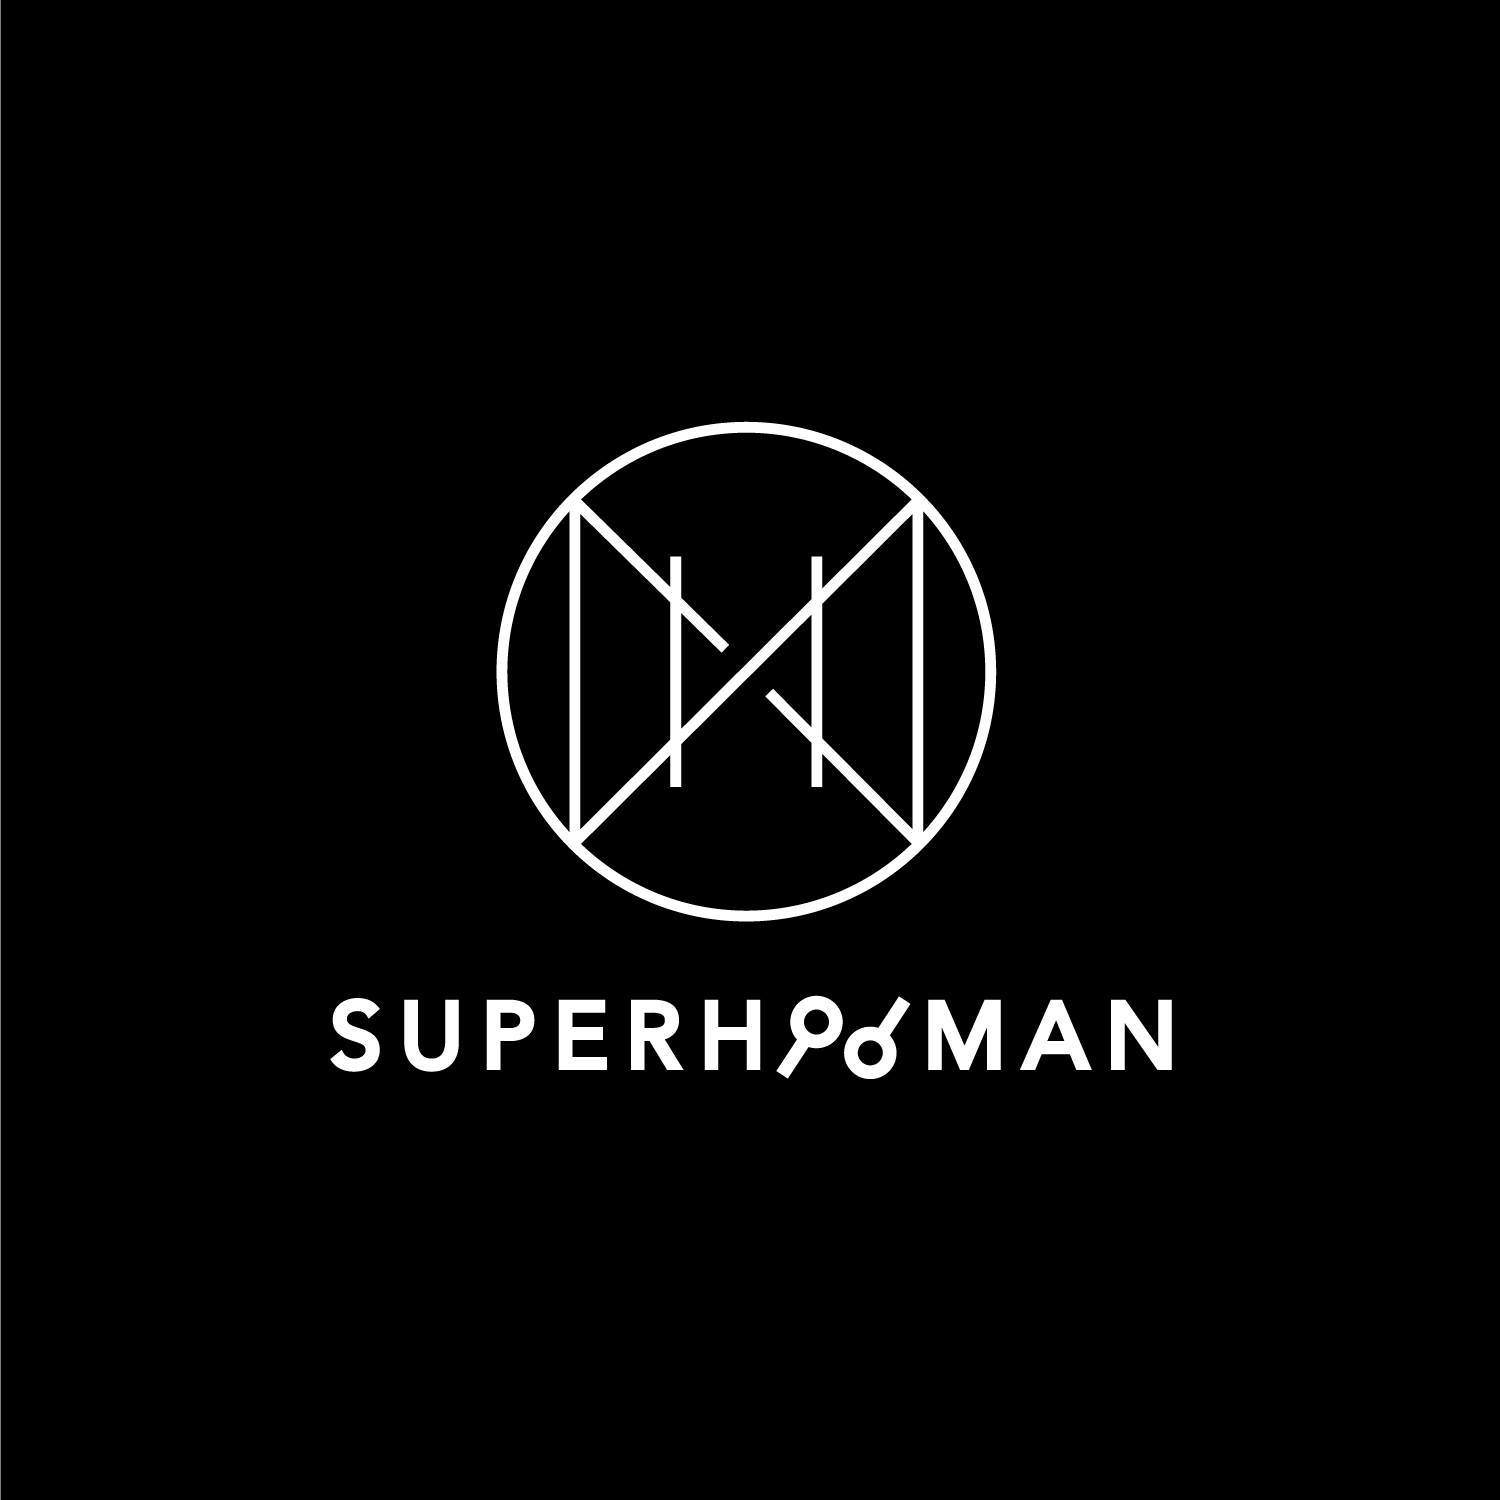 SUPERHOOMAN